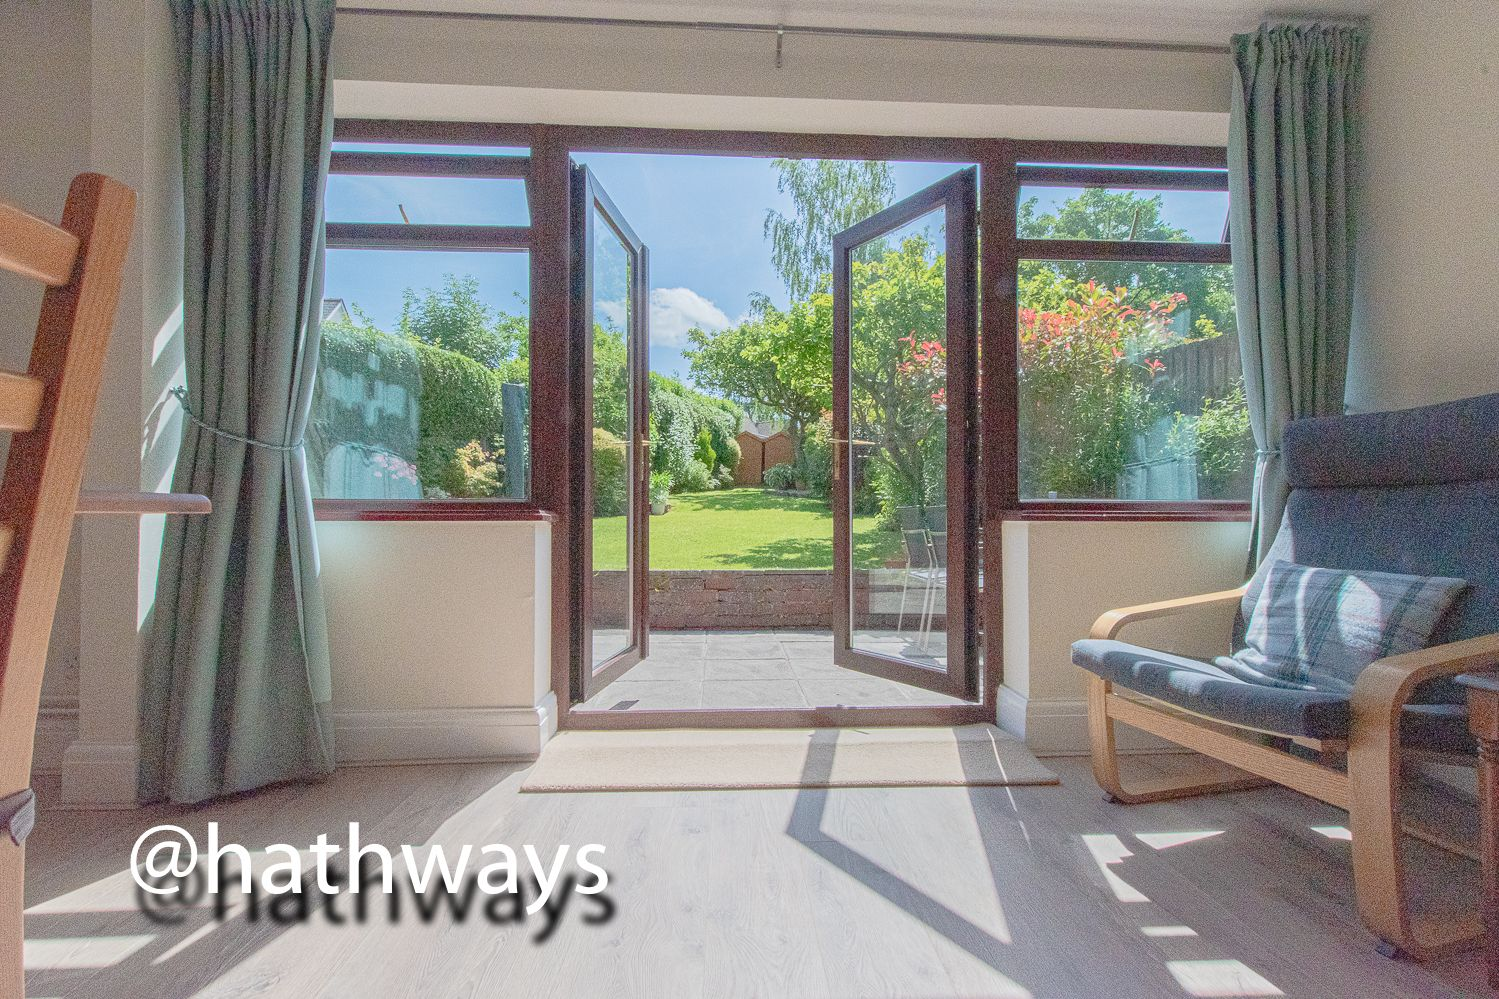 4 bed house for sale in Ashford Close South 21